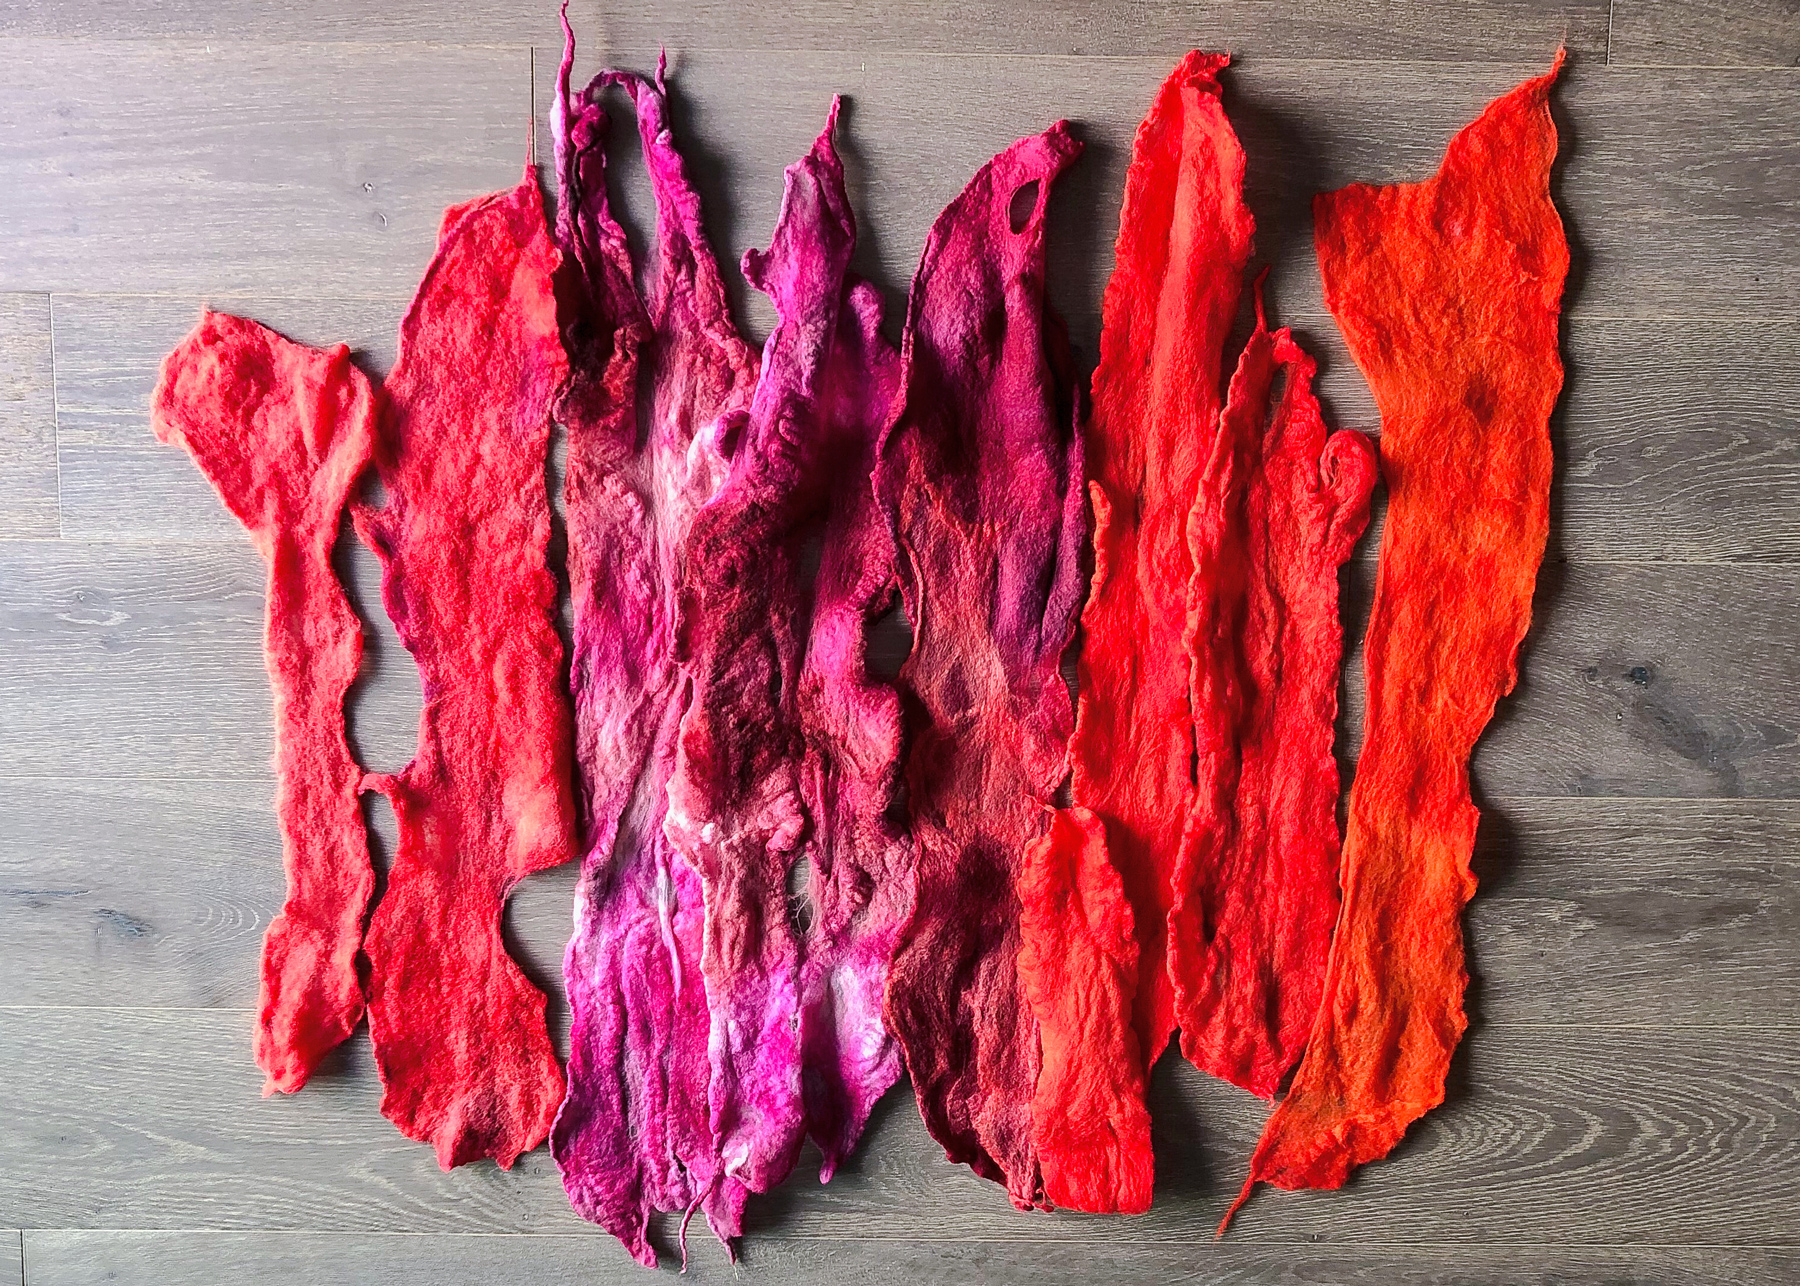 Then, I use wet felting to turn the wool into felt strips.